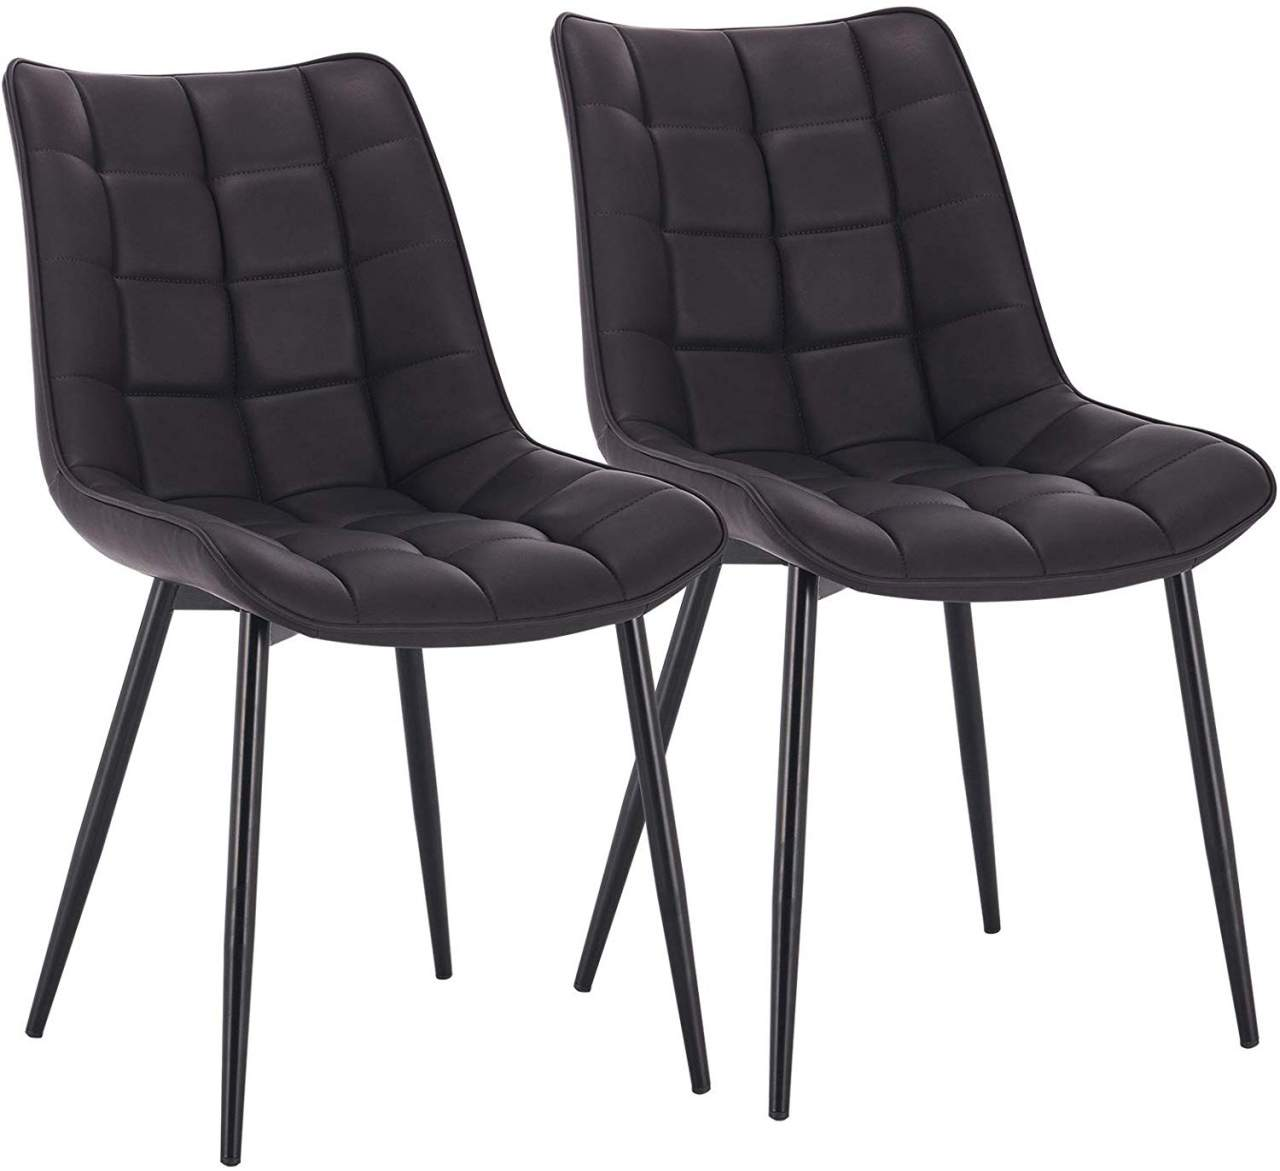 7 pieces faux leather kitchen chairs - Model Elif